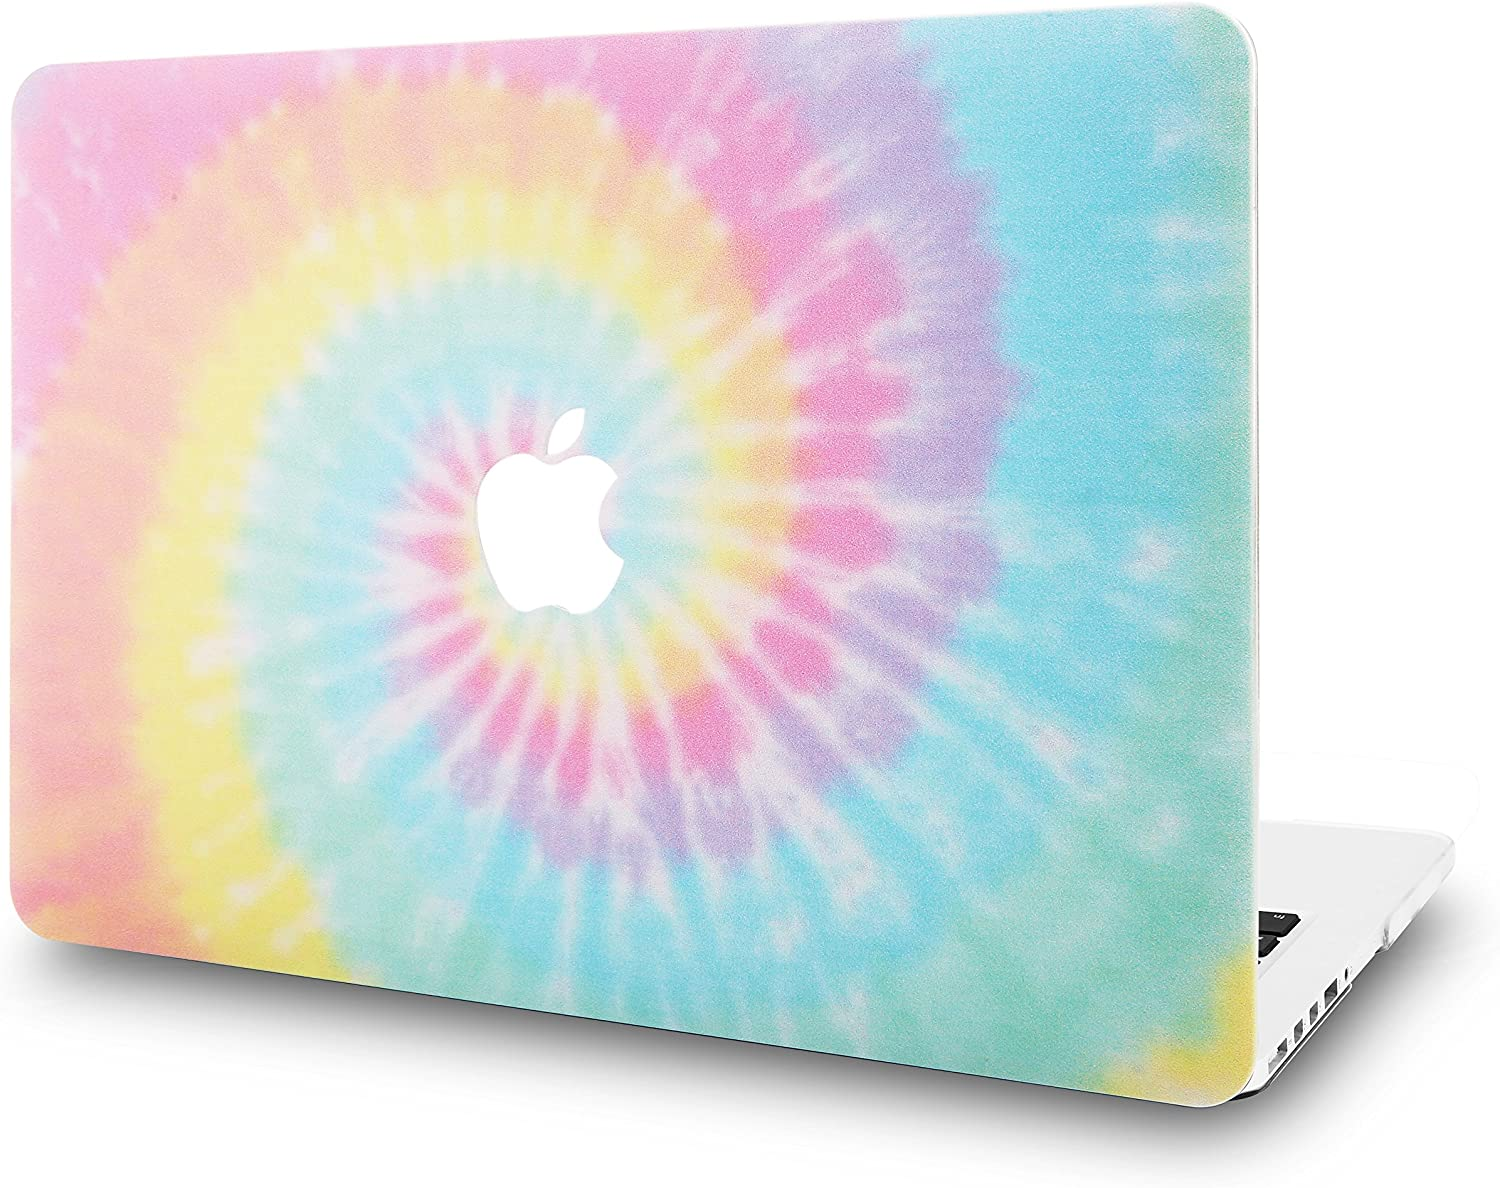 "KECC Laptop Case for Old MacBook Pro 13"" Retina (-2015) Plastic Case Hard Shell Cover A1502 / A1425 (Colorful Spin)"